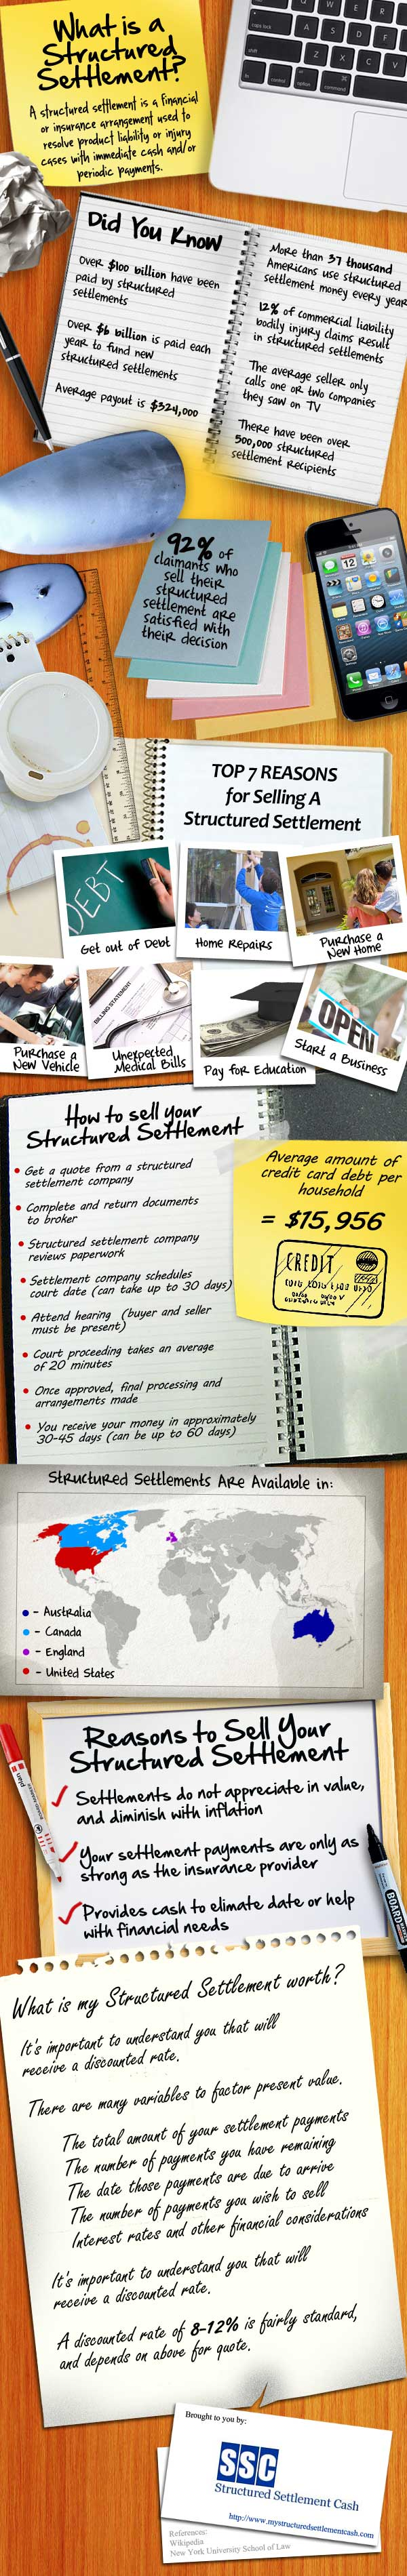 What is a Structured Settlement